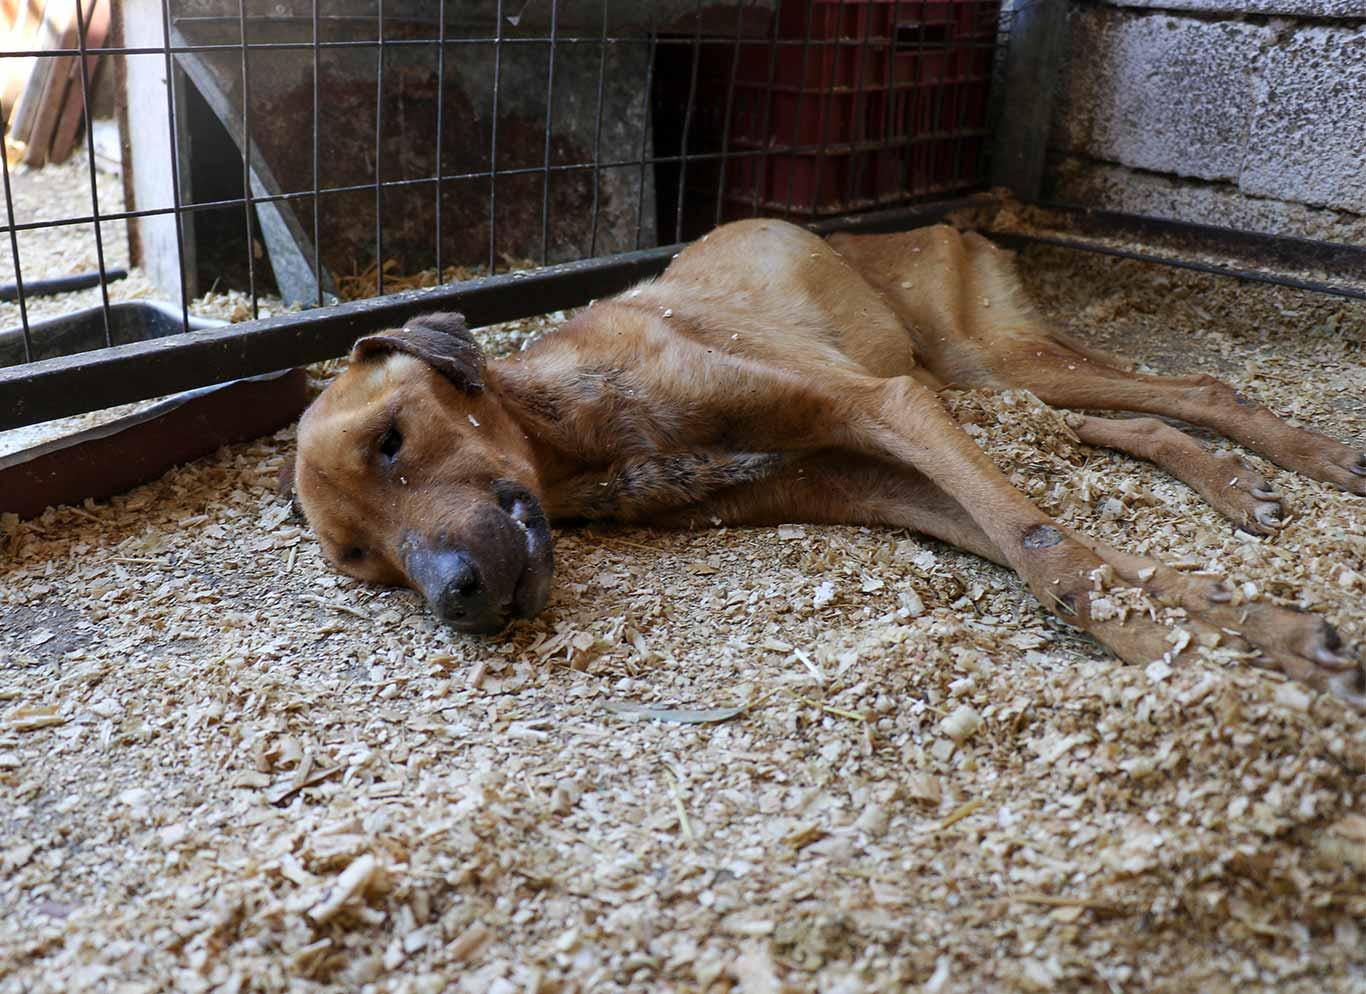 Poor Willy was skeletal, covered with mange and so weak he could barely stand... 2